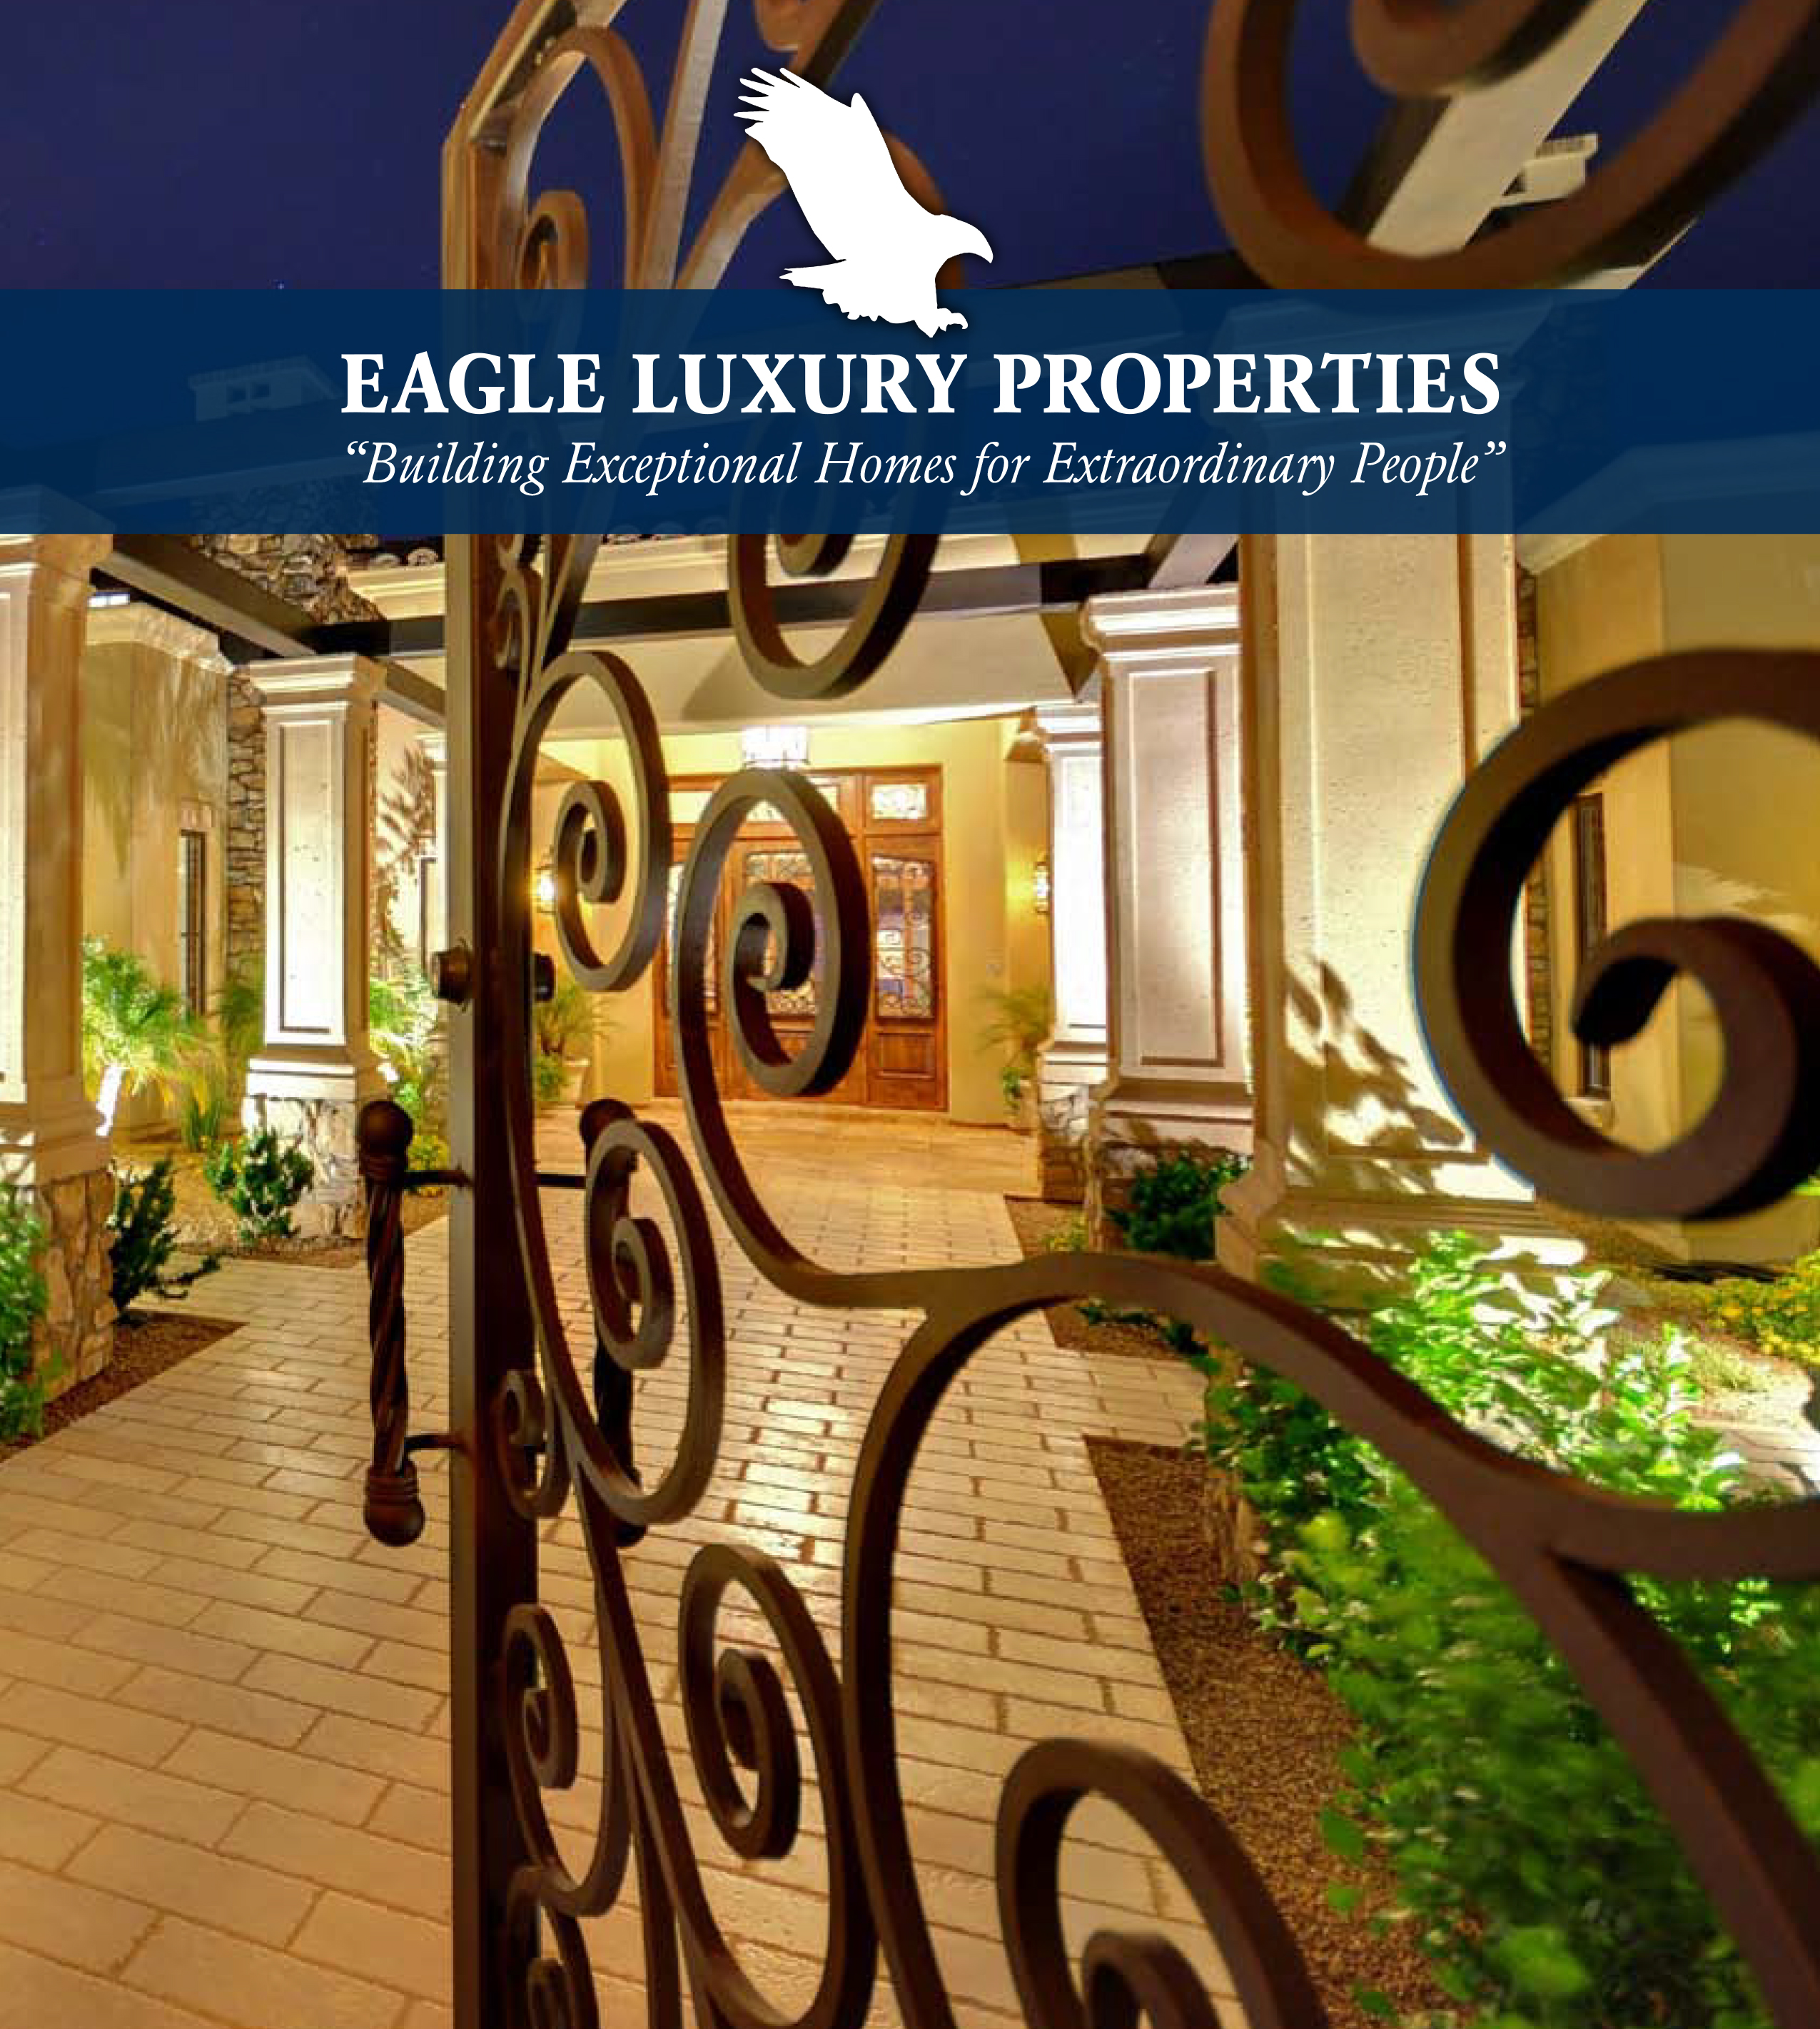 Eagle Luxury Properties: Content strategy and creation